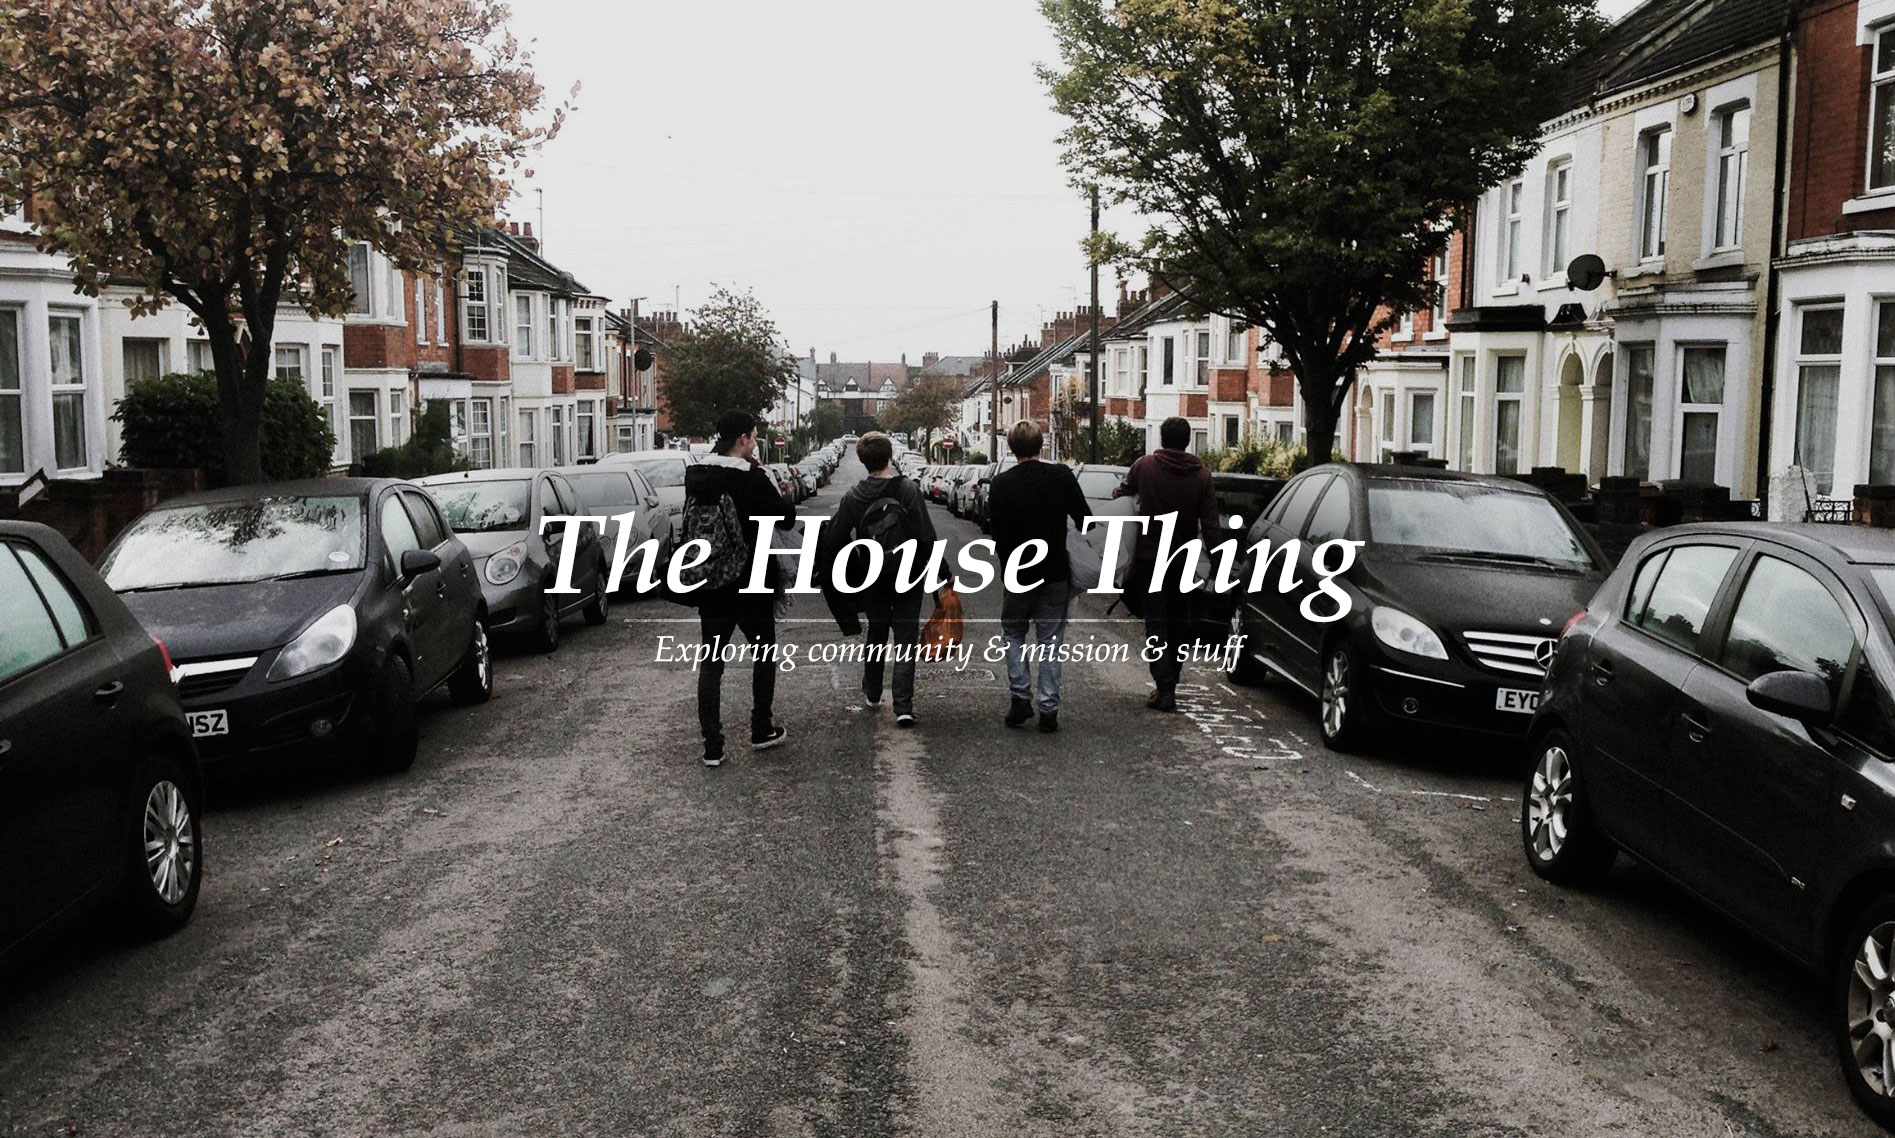 The House Thing